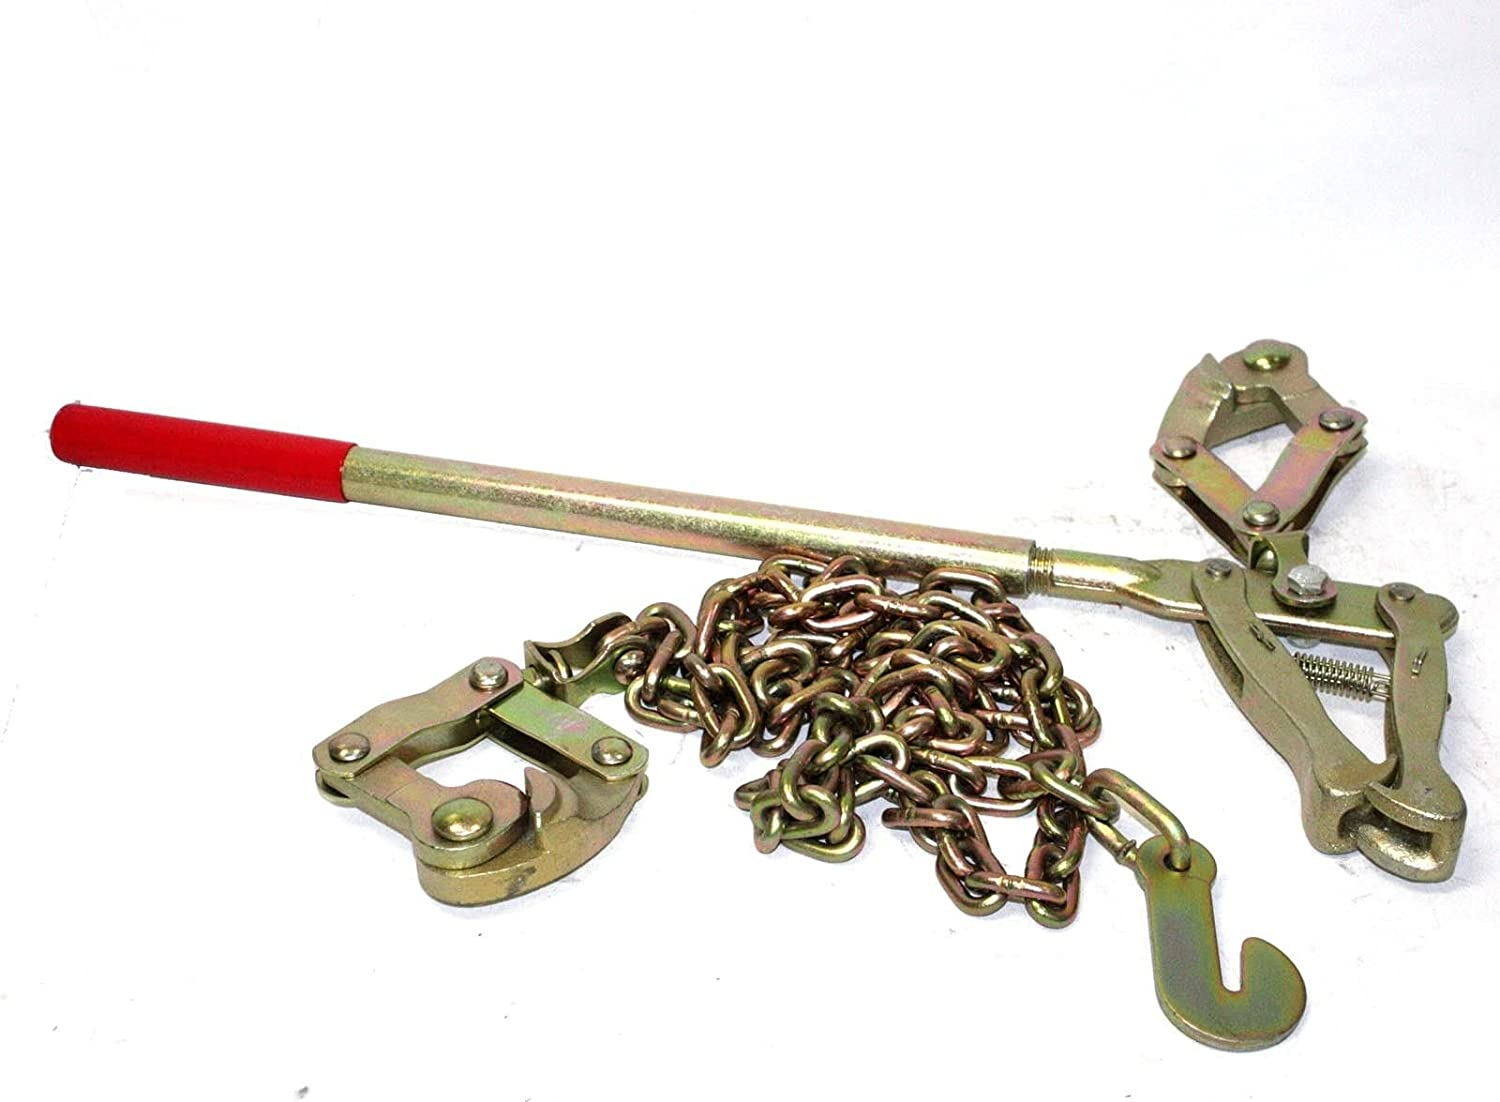 COLIBROX Chain Strainer Cattle Barn Stretcher Tension Farm San Francisco Mall Courier shipping free shipping Fence